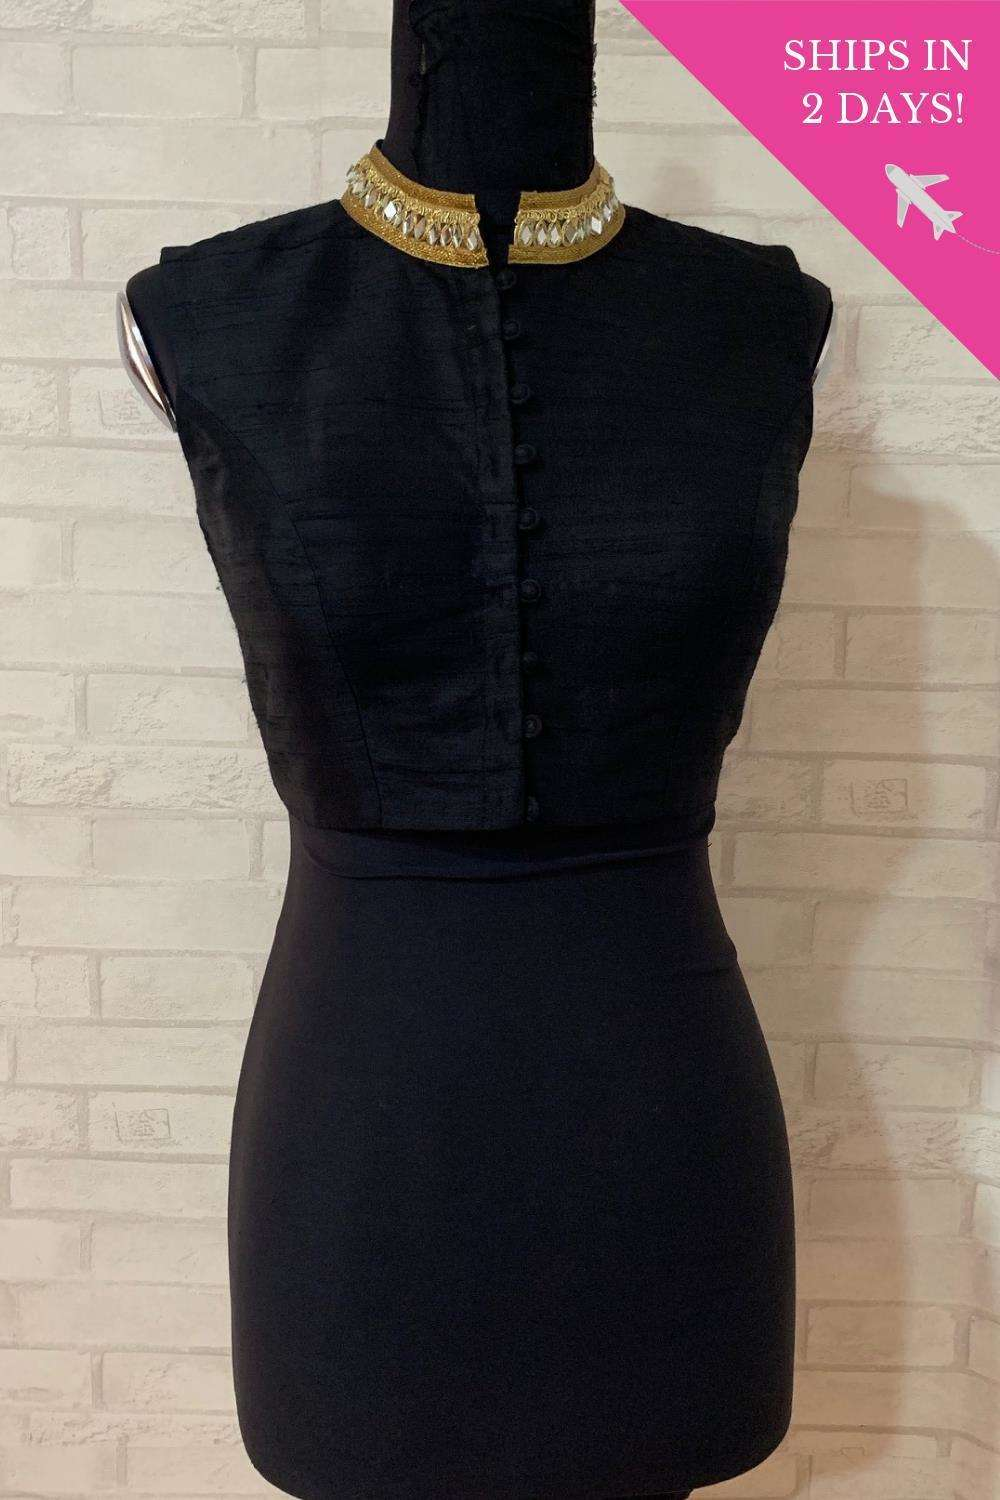 Black chinese collar blouse; Size: 38 - House of Blouse